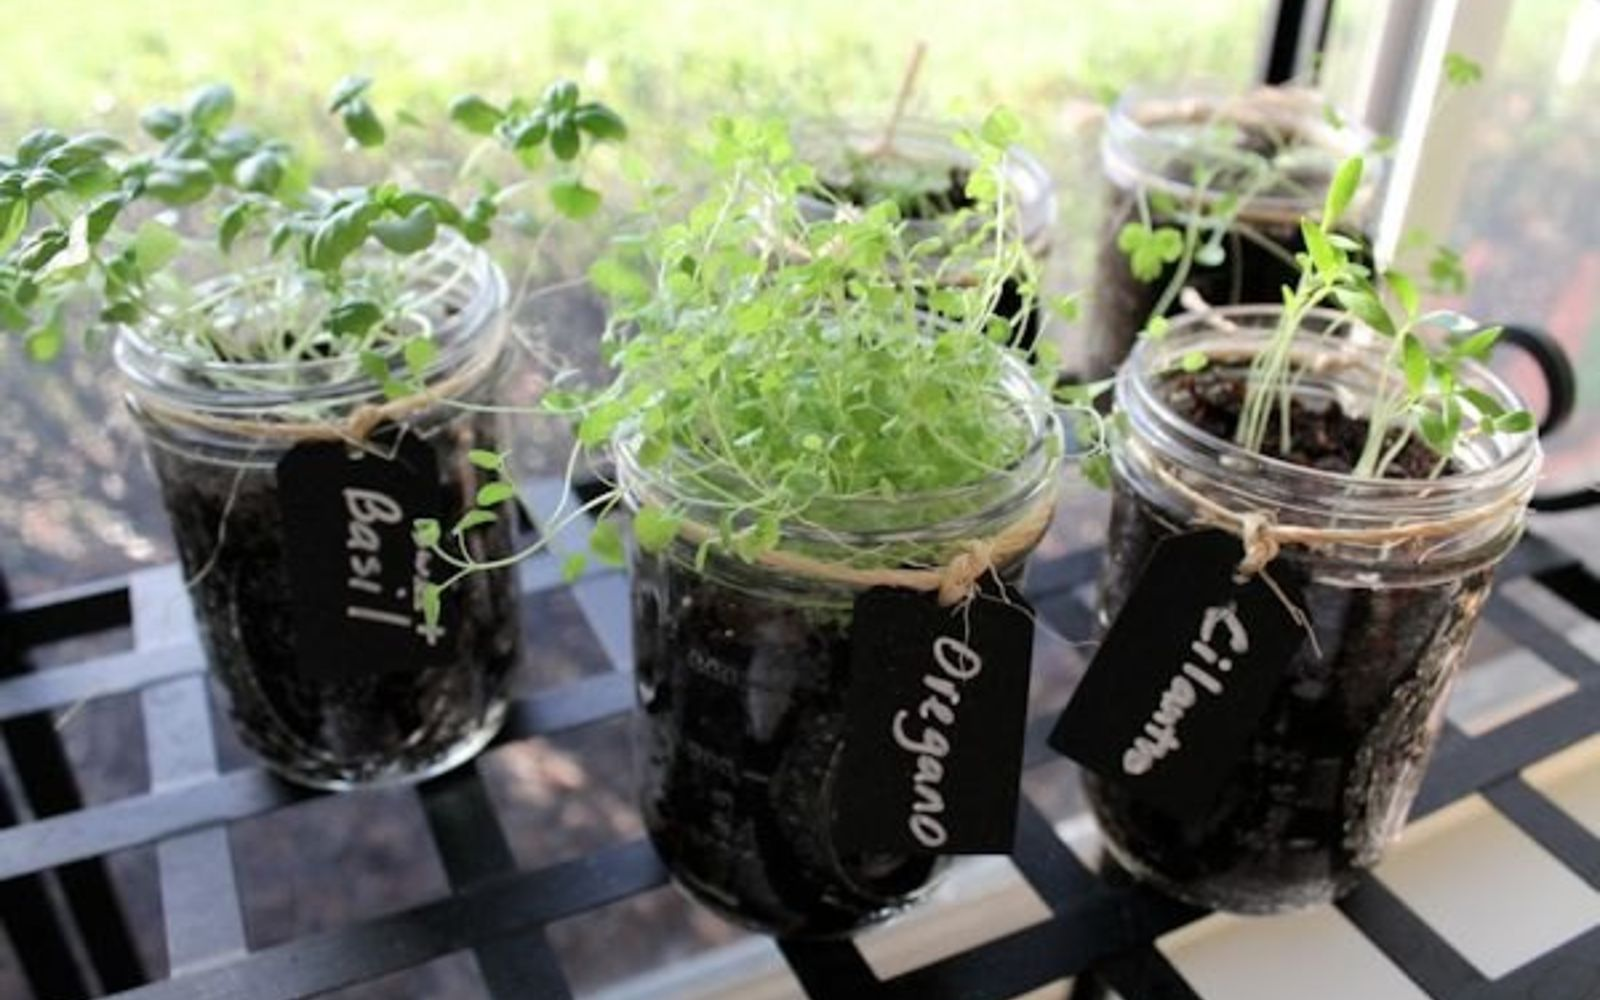 s 11 gardening hacks using empty glass jars, gardening, repurposing upcycling, Fit an entire herb garden on your windowsill